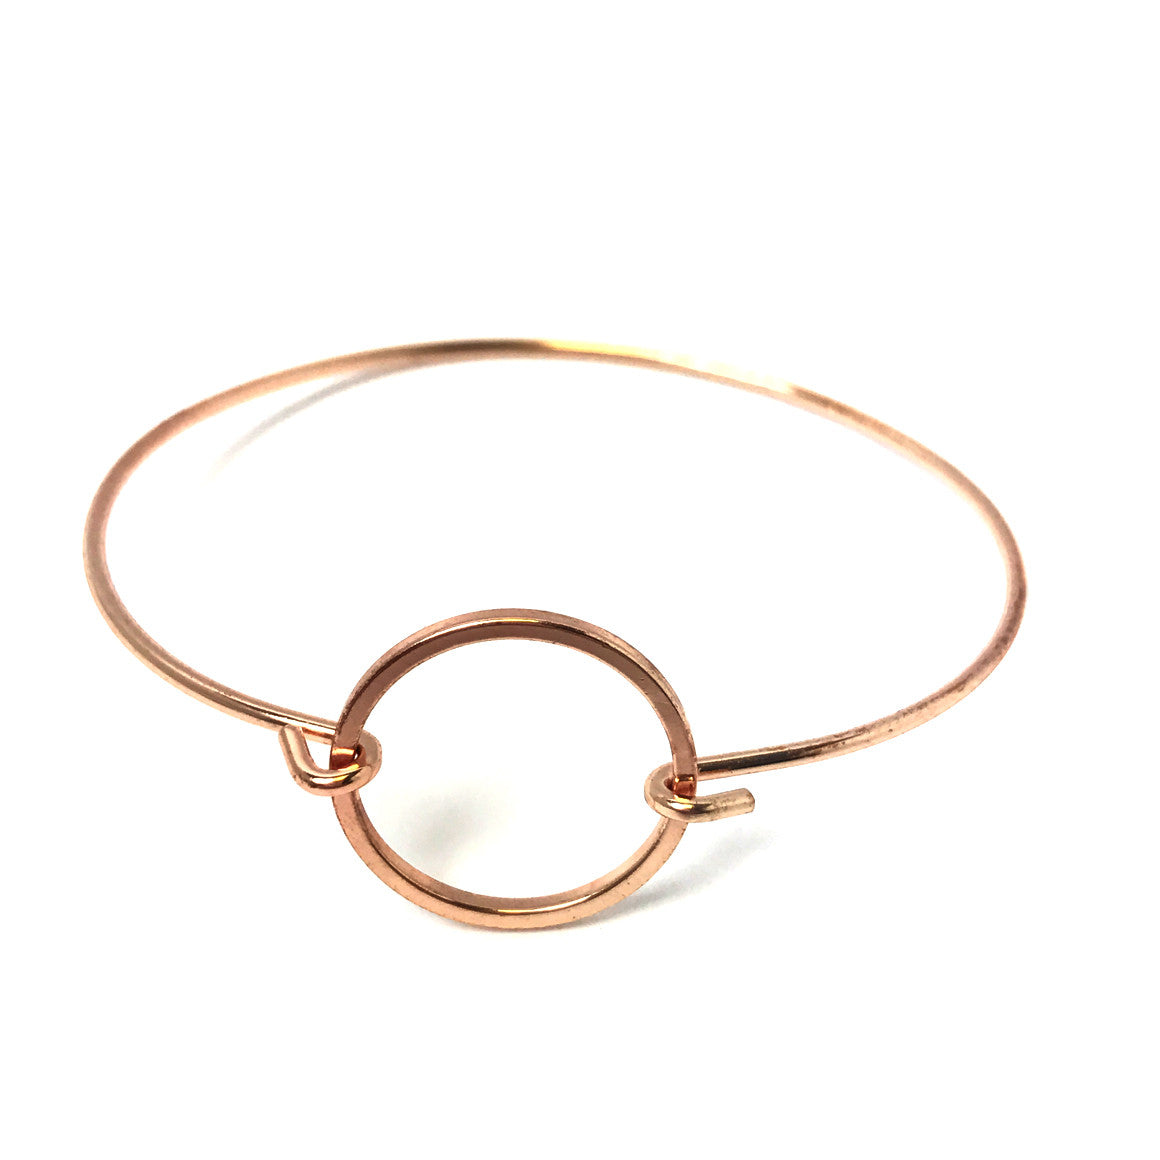 amy o bracelets s bracelet jewelry perla gold products delicate